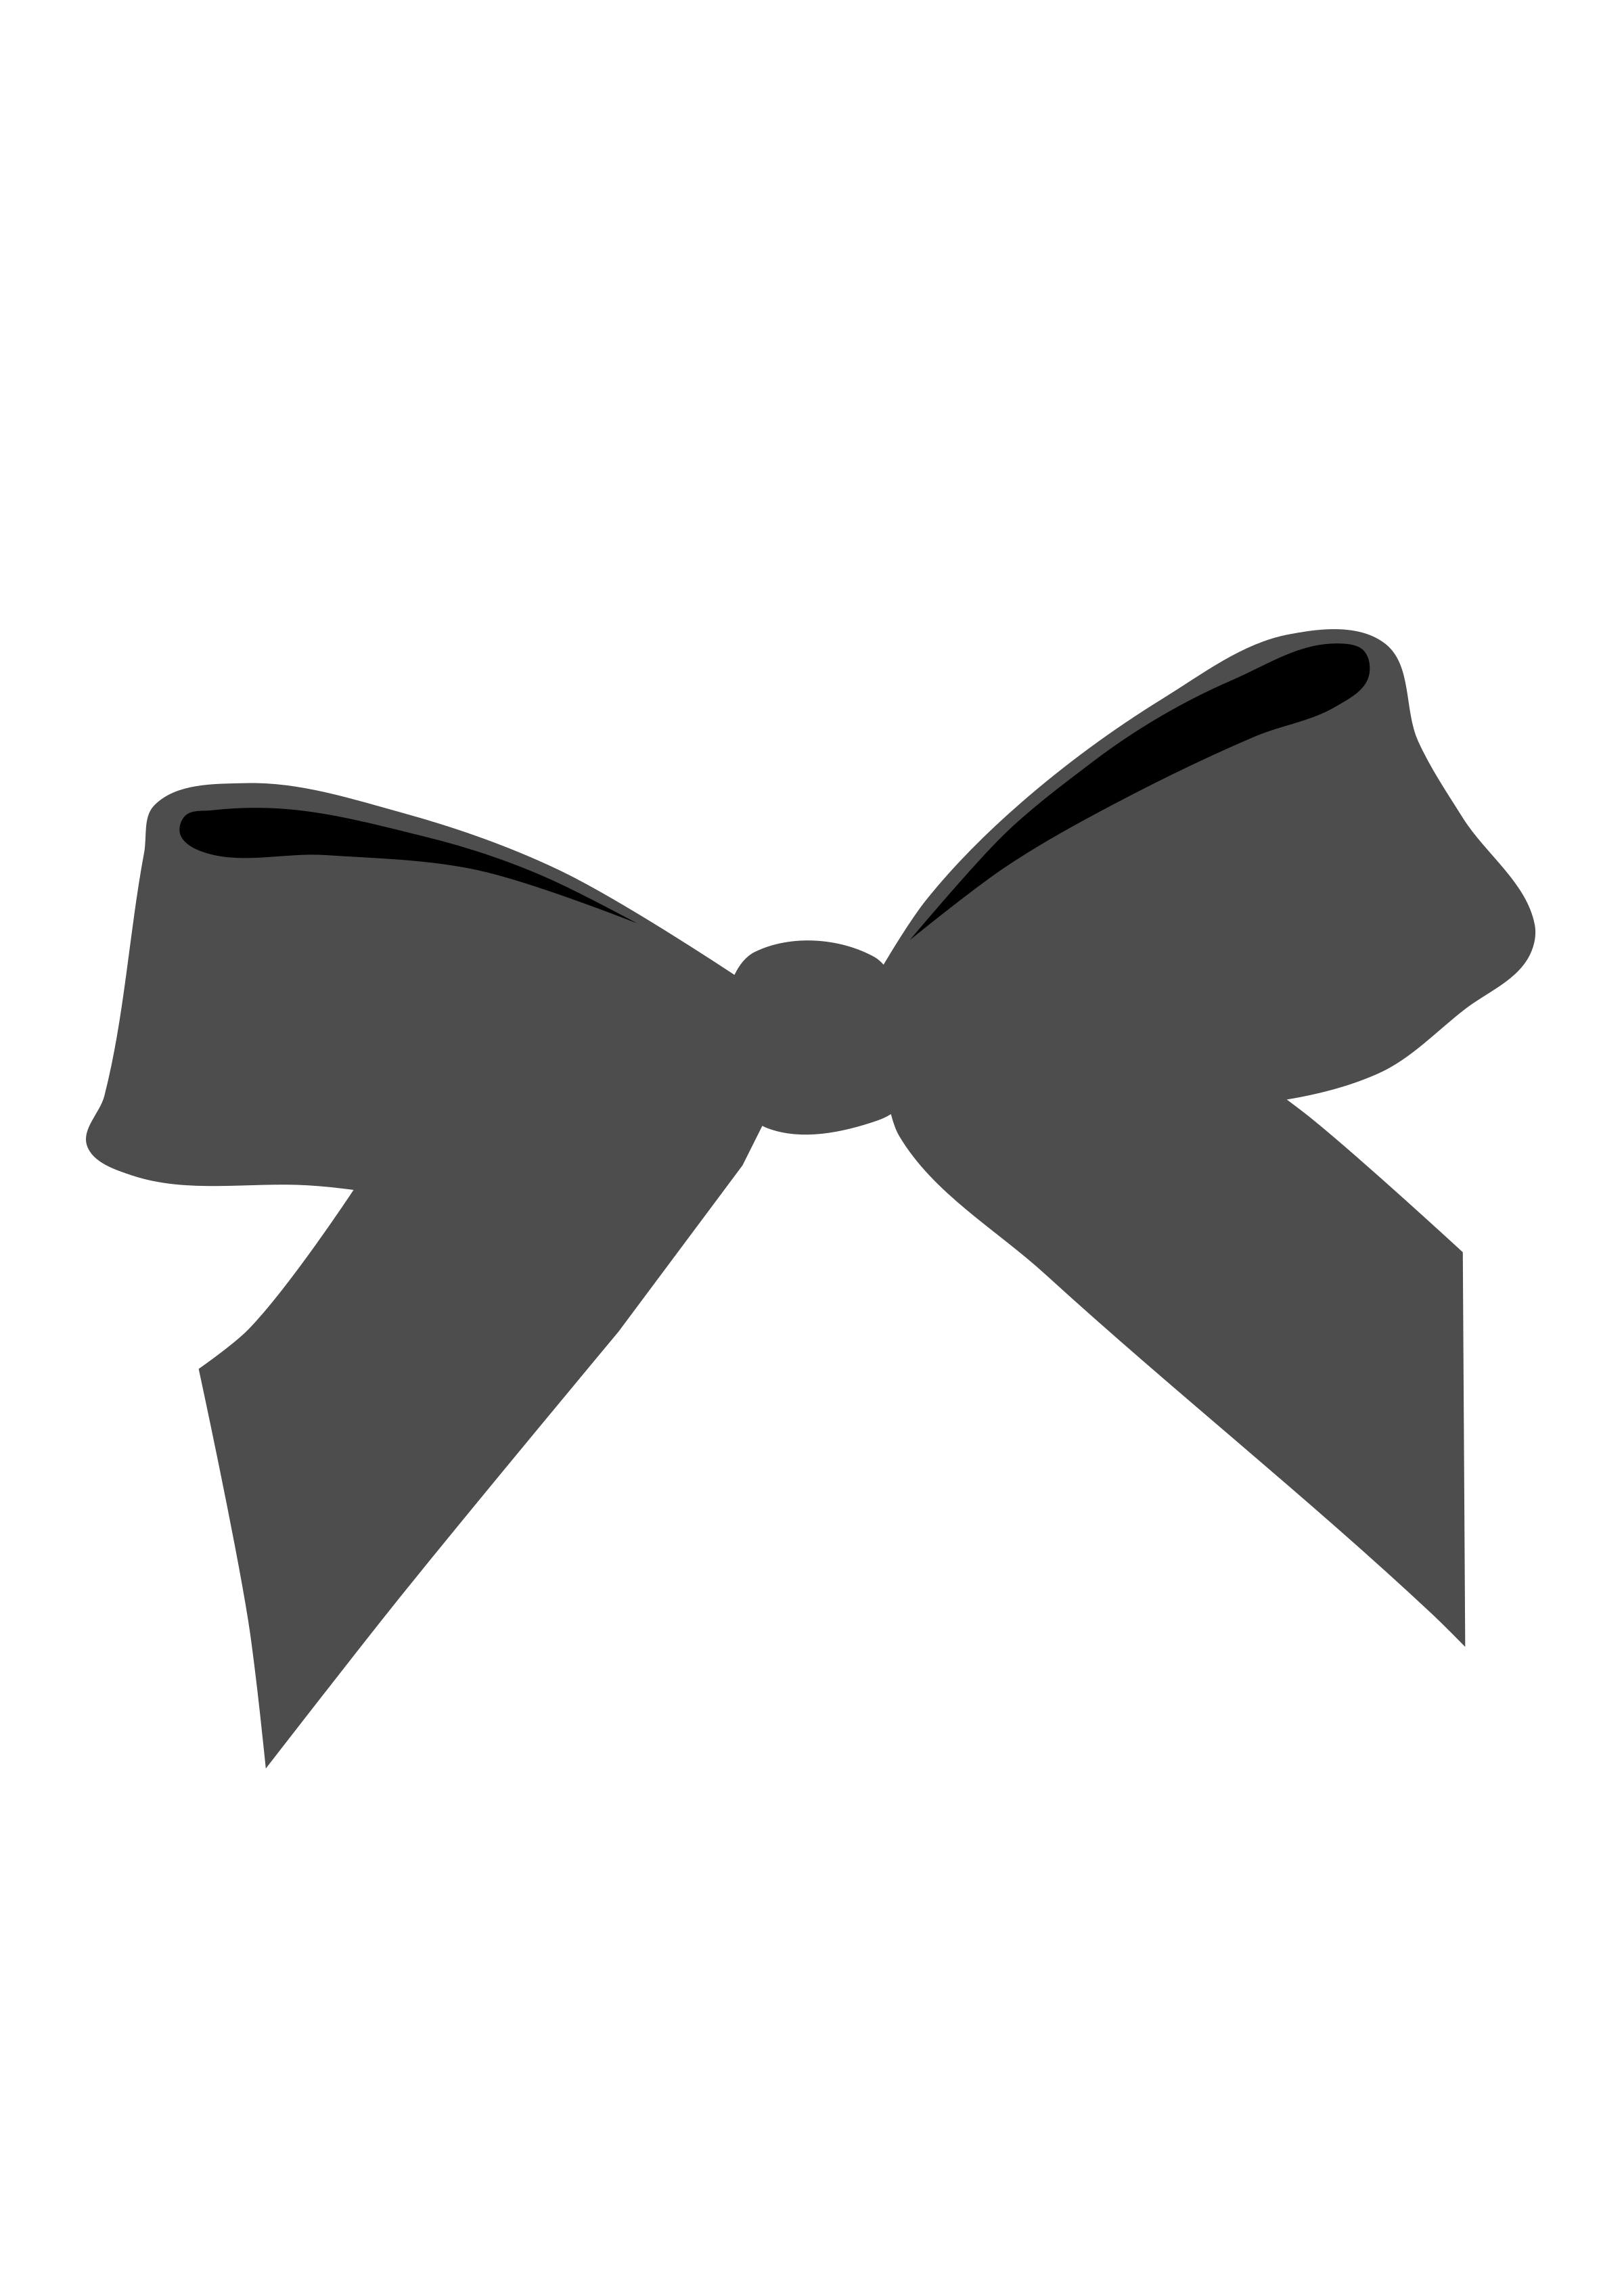 Black Ribbon by jeeeyul